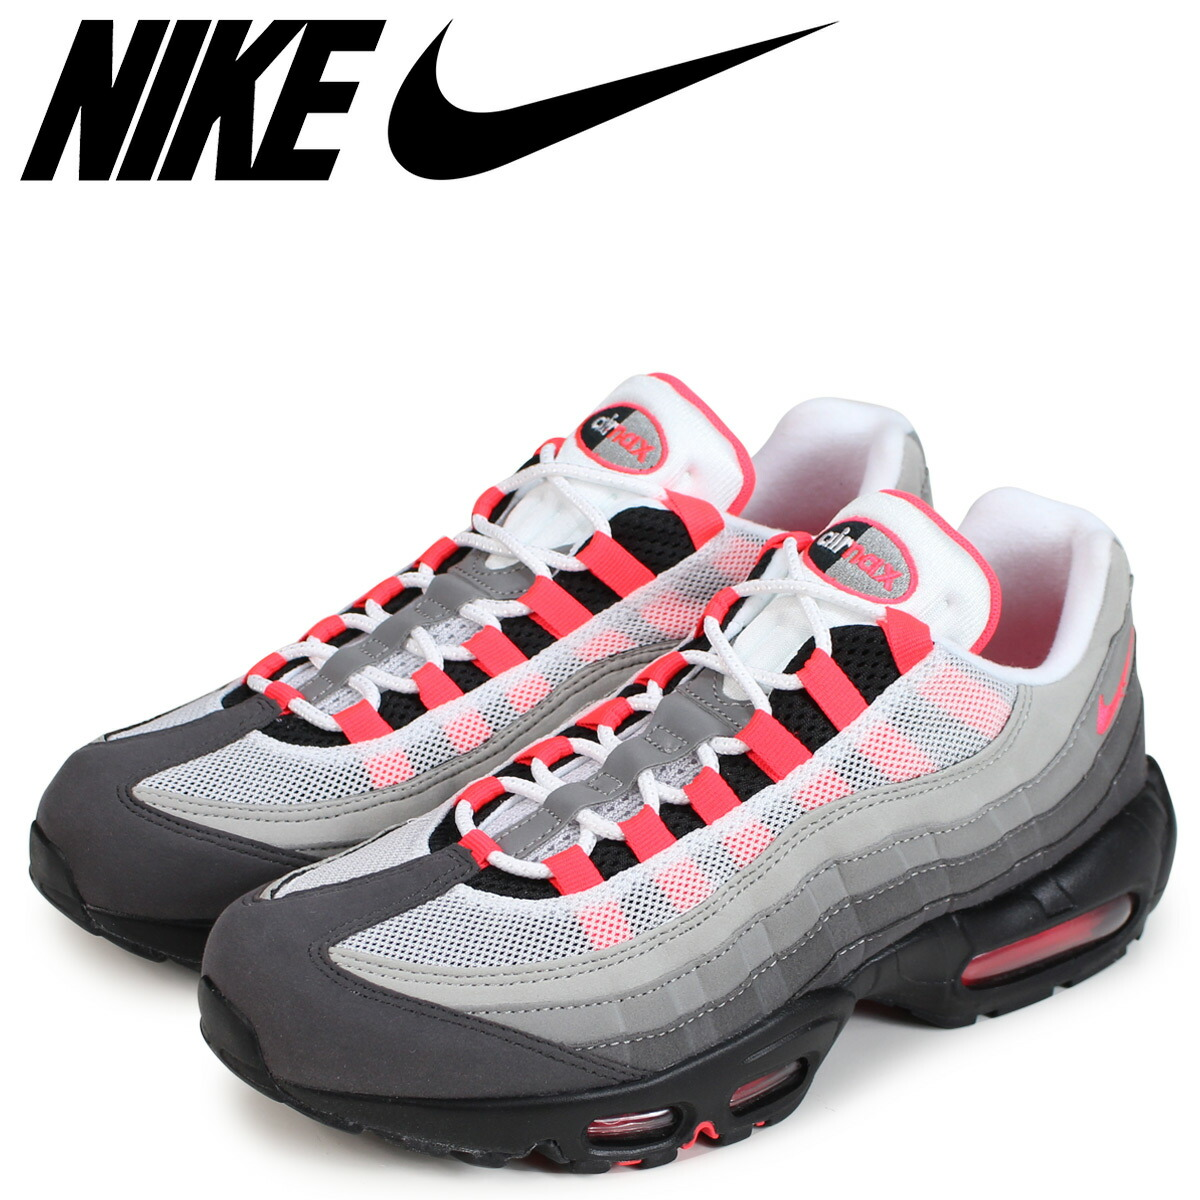 quality design 495b7 a27ee  brand NIKE getting high popularity from sneakers freak